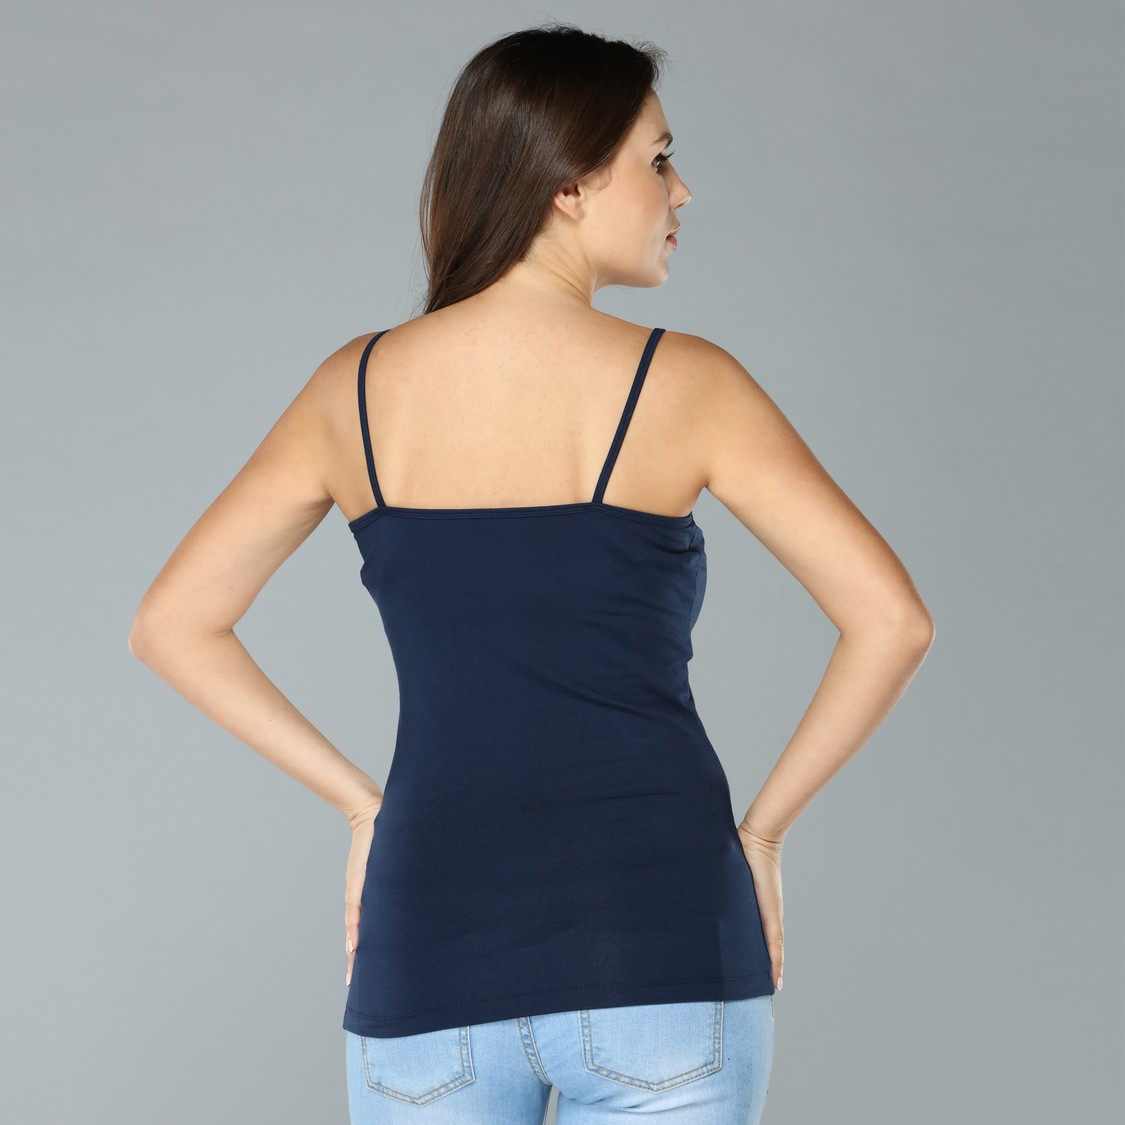 Lace Detail Camisole with Spaghetti Straps